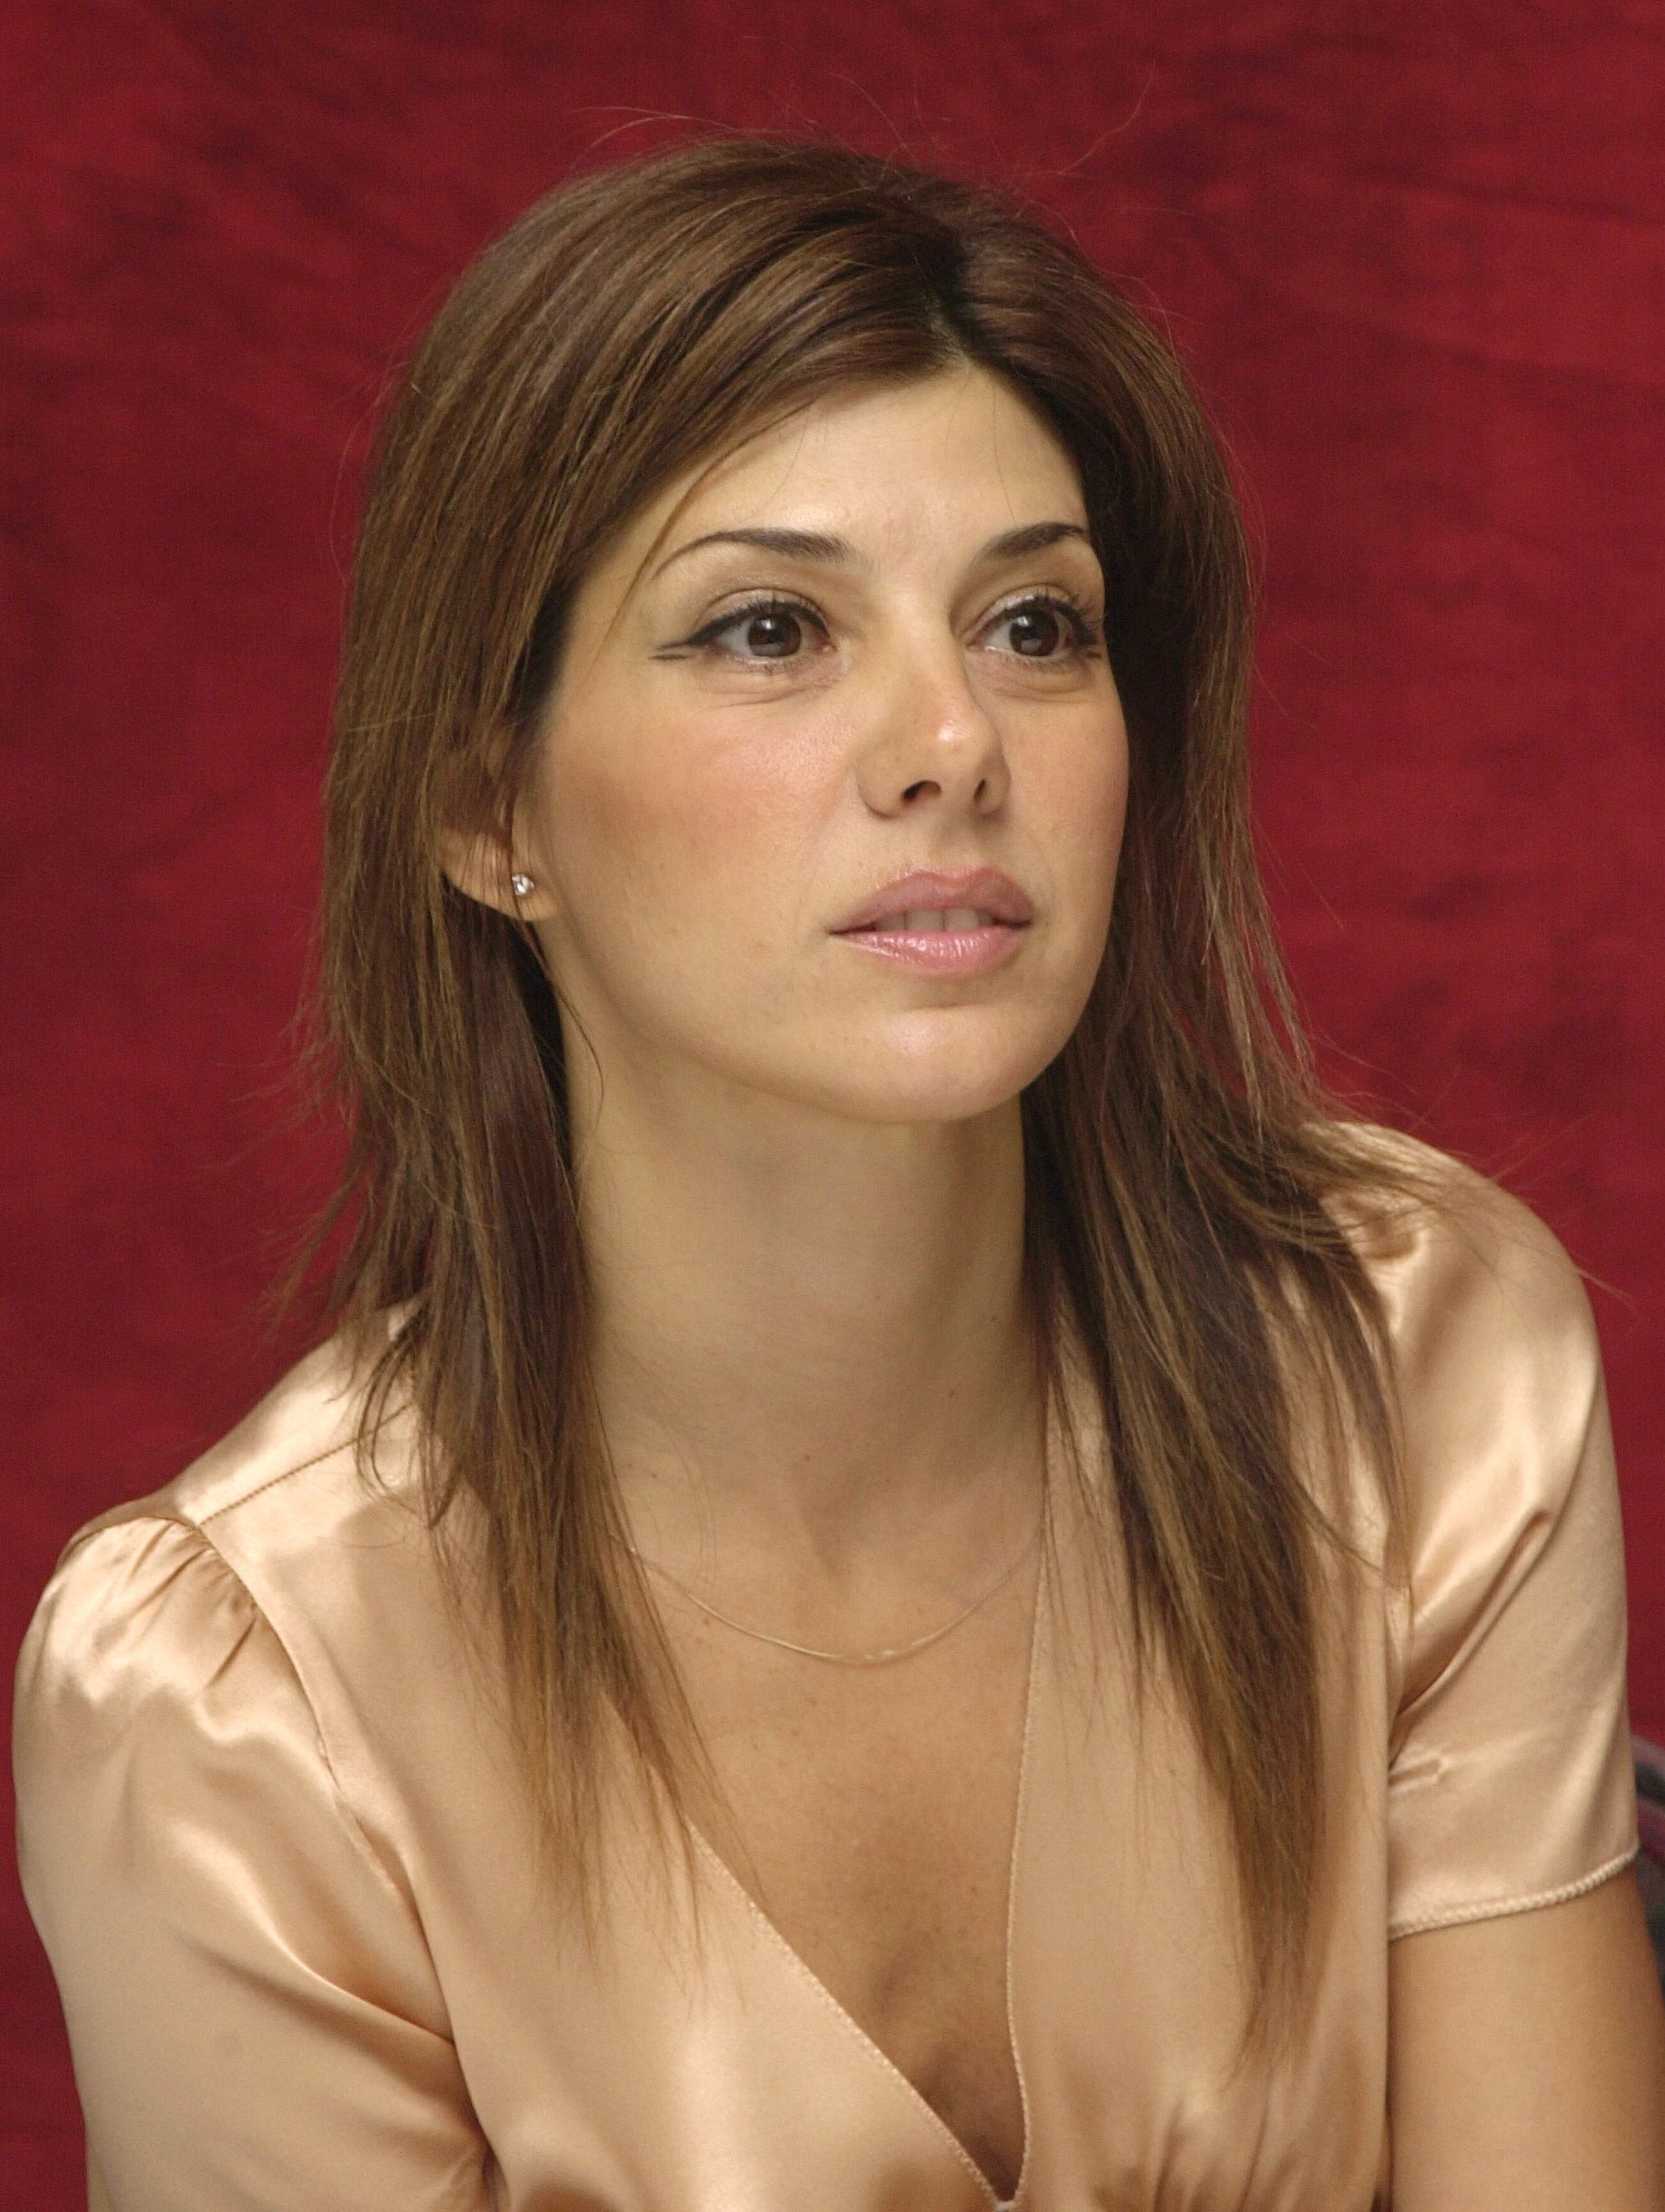 Does Marisa Tomei pass anywhere besides Italy?